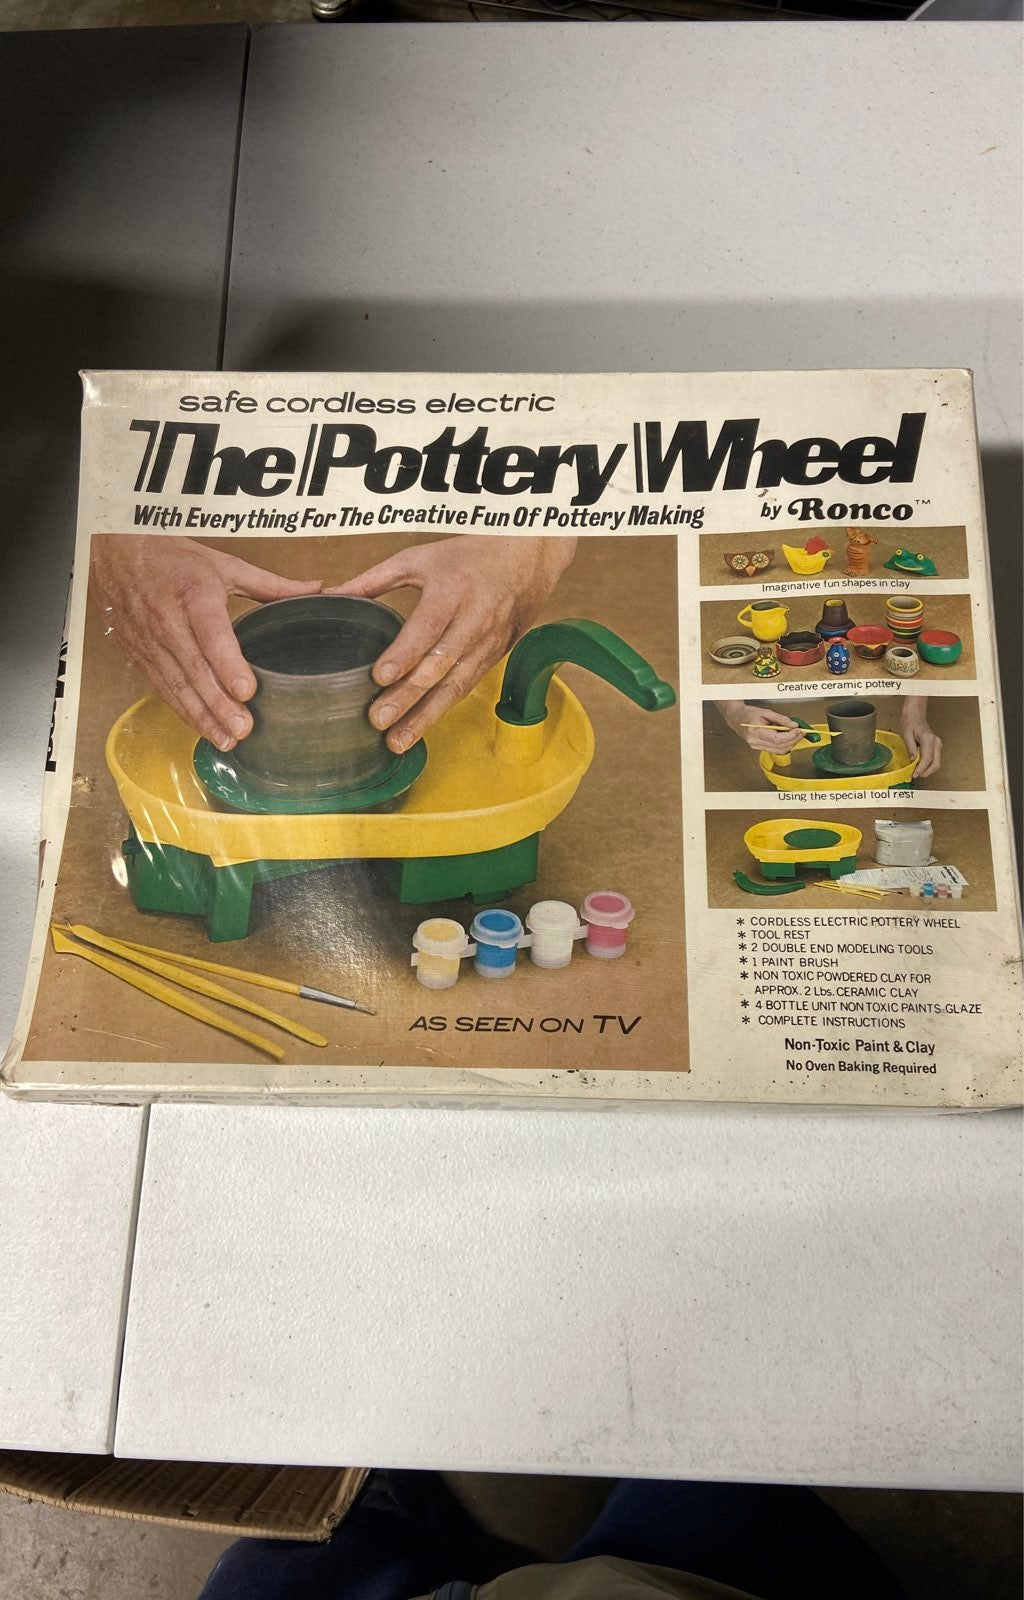 VTG Pottery Wheel By Ronco Sealed